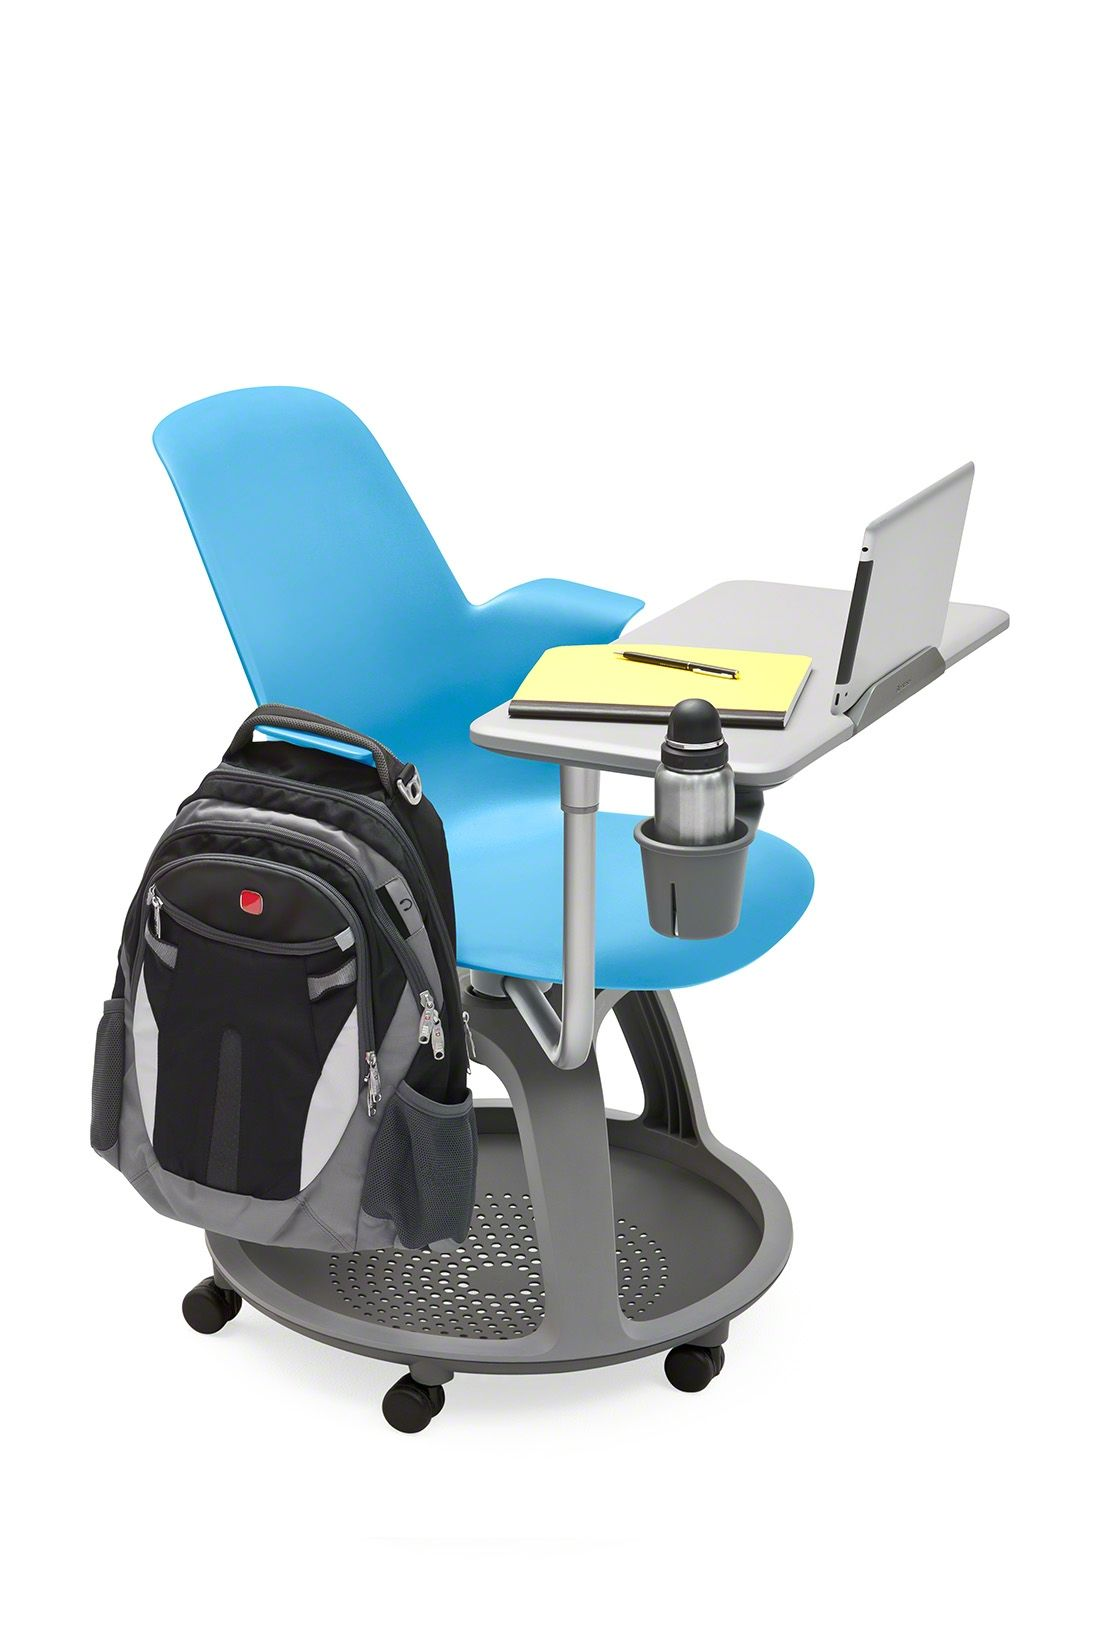 ipad stand for chair menards folding chairs steelcase has just recently introduced a tablet holder